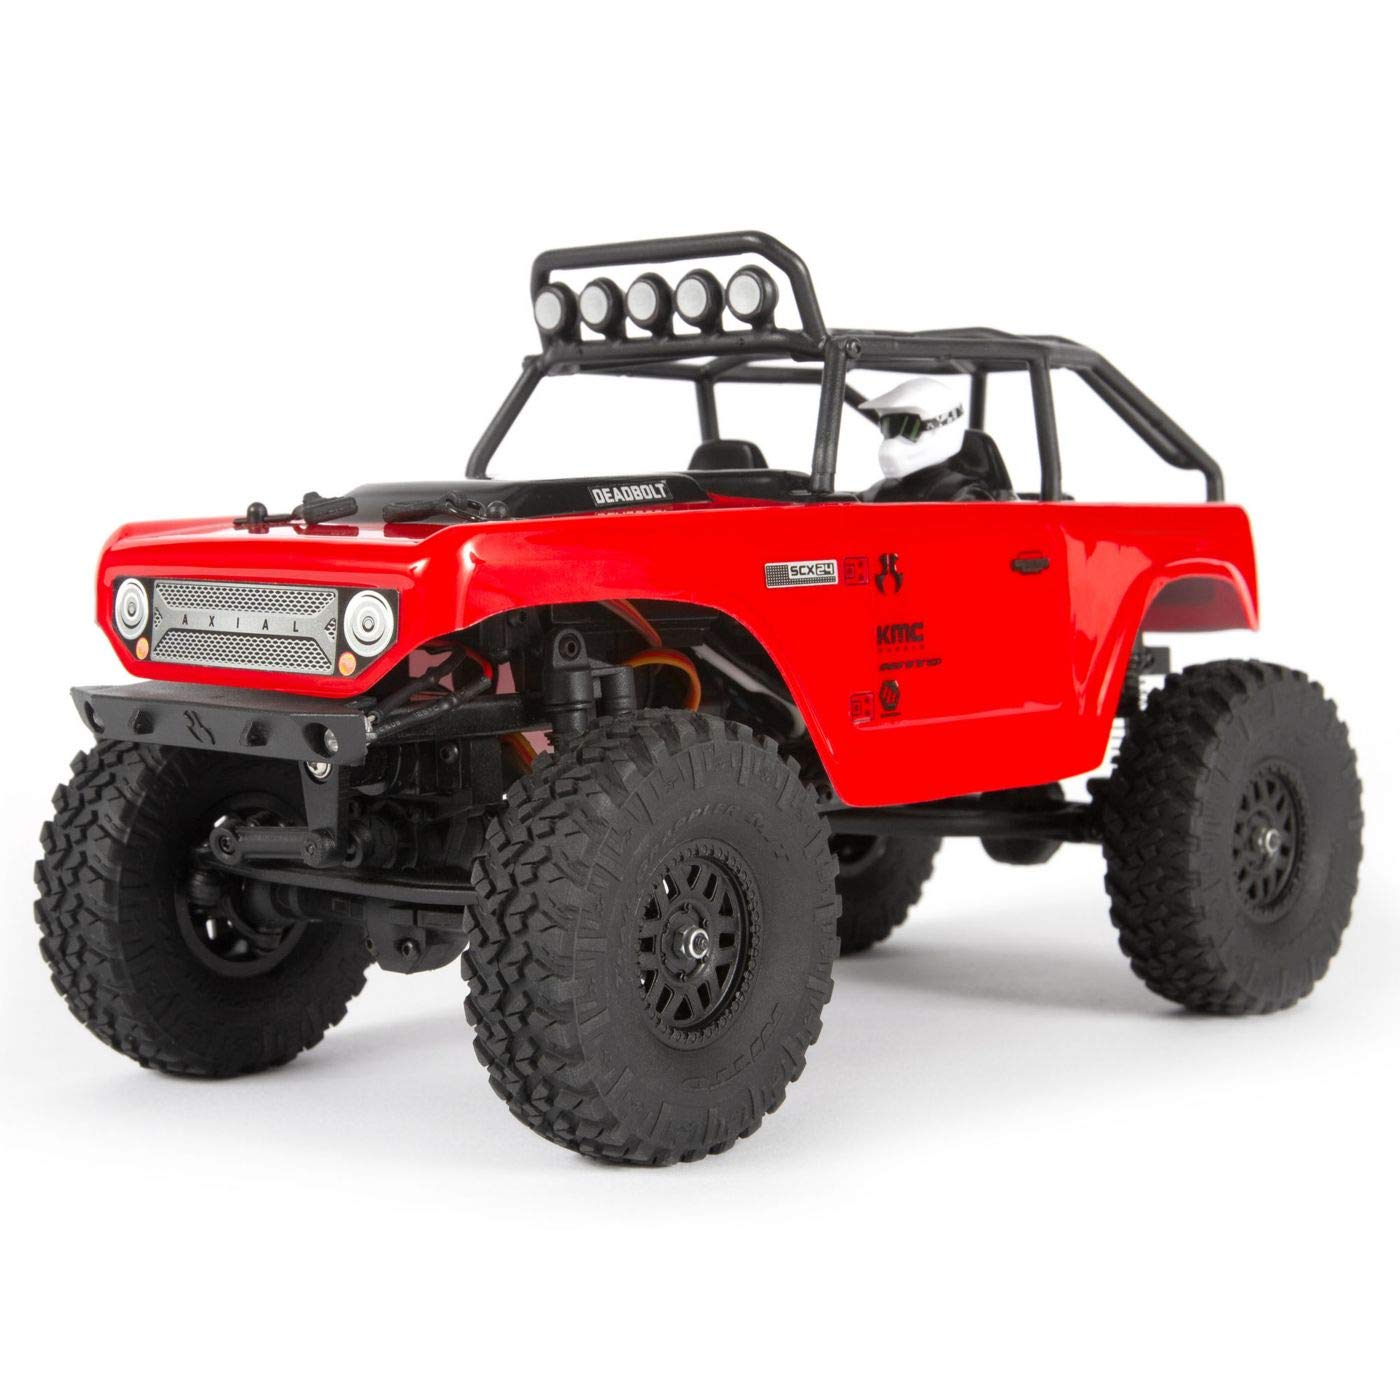 Axial 1/24 SCX24 Deadbolt 4WD Rock Crawler Brushed RTR, Red, AXI90081T1